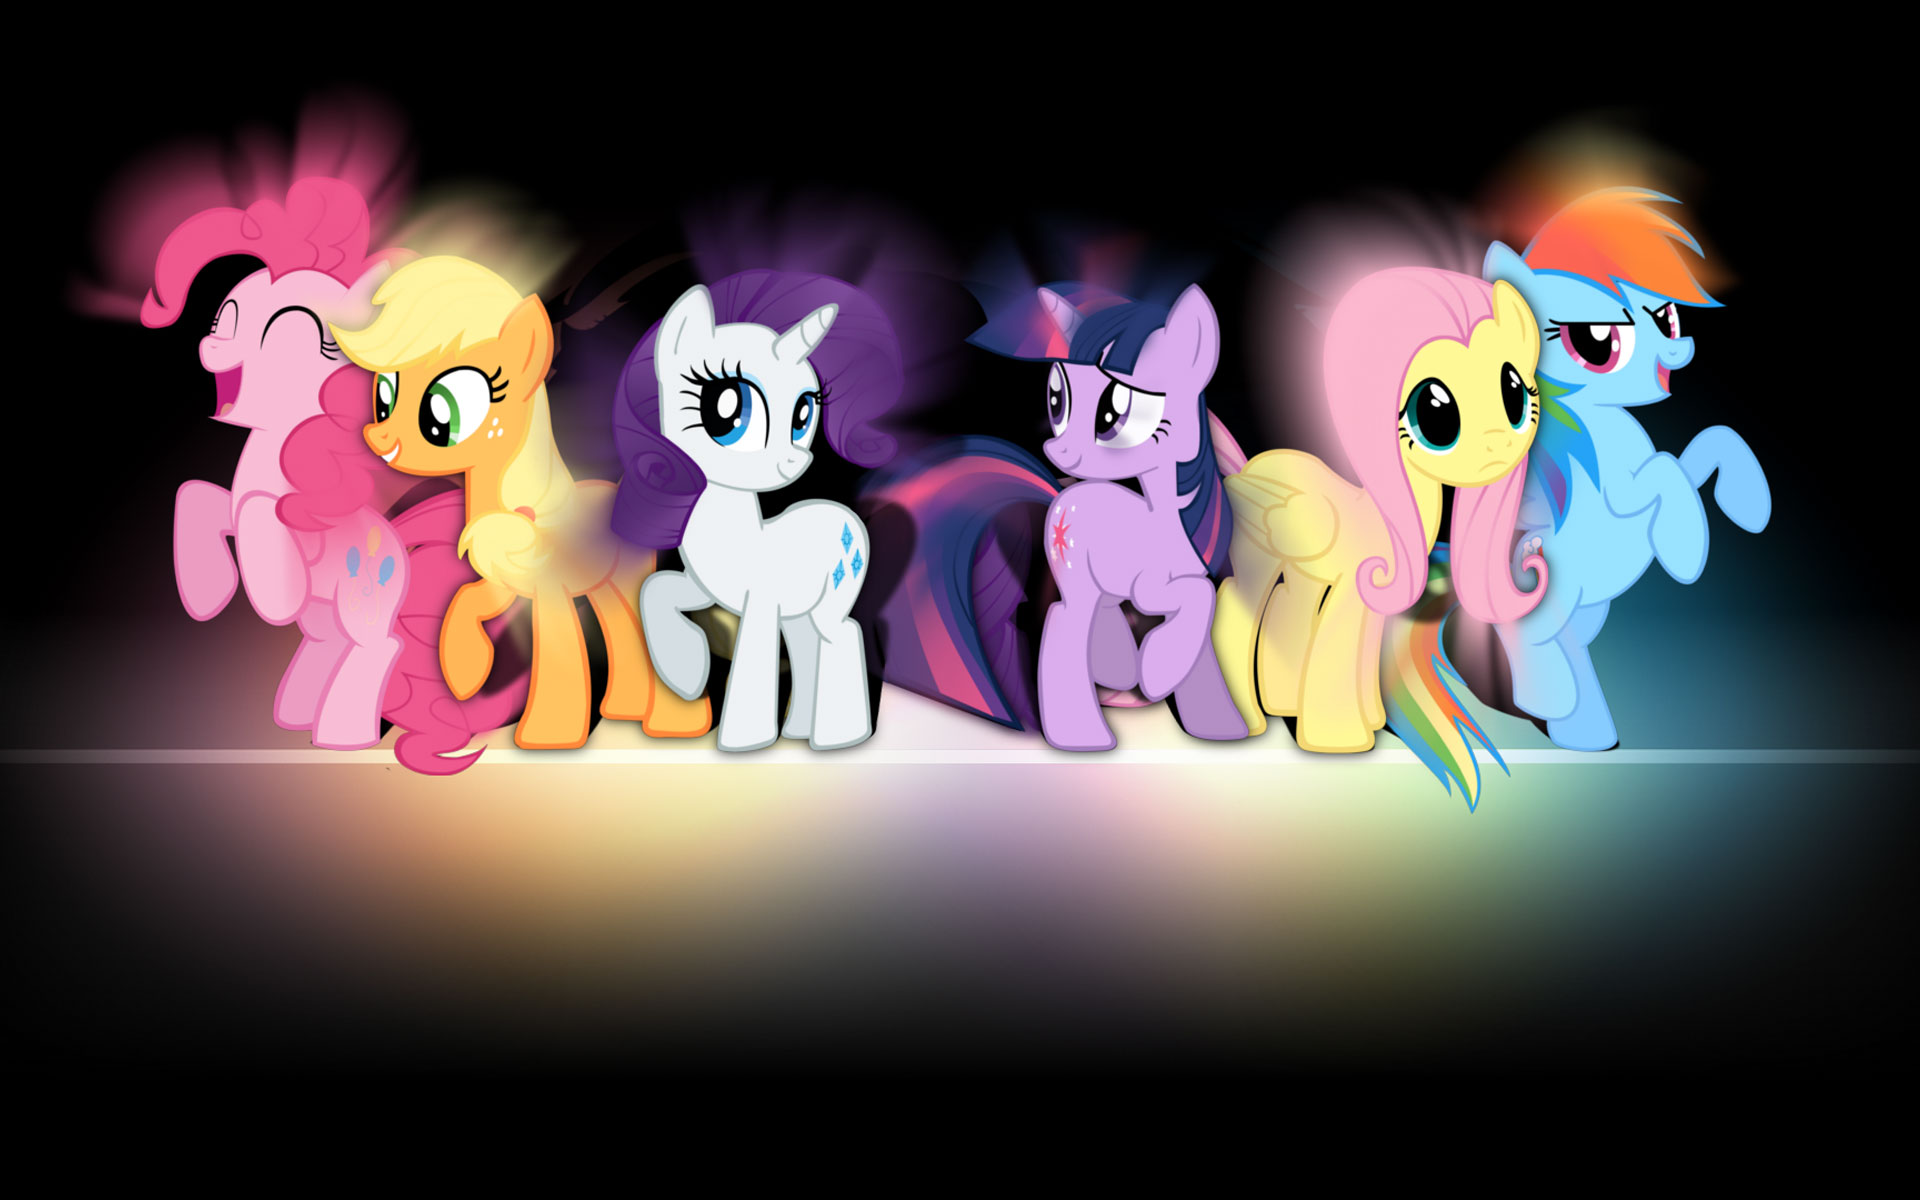 Free My Little Pony Wallpaper 19467 1920x1080 px